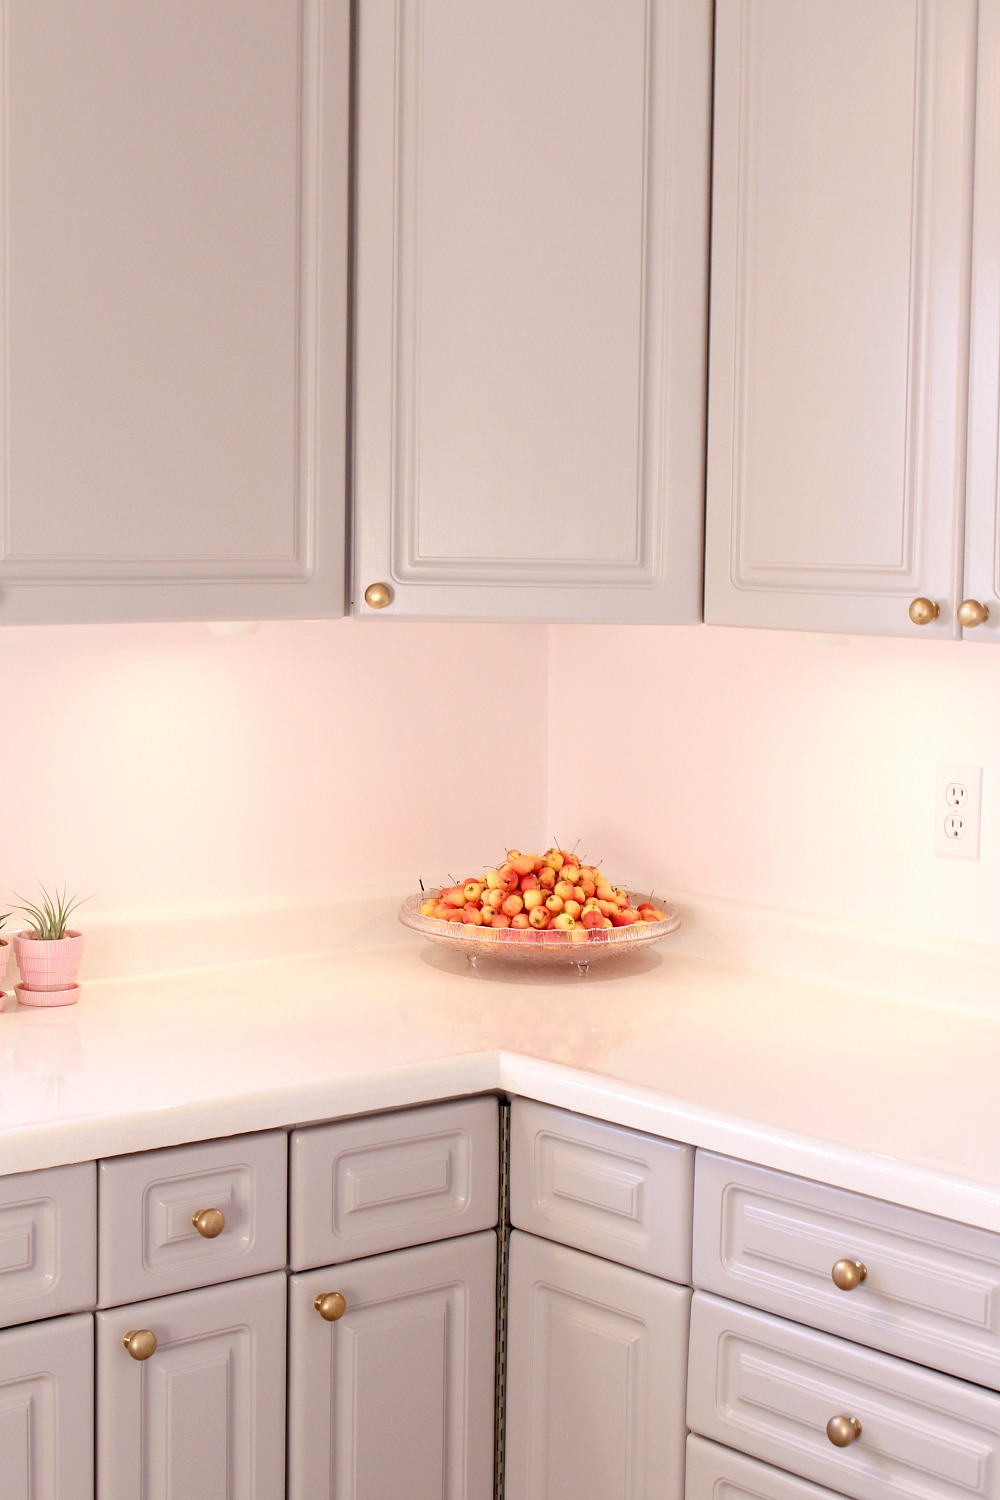 How to refinish counters with rust-oleum